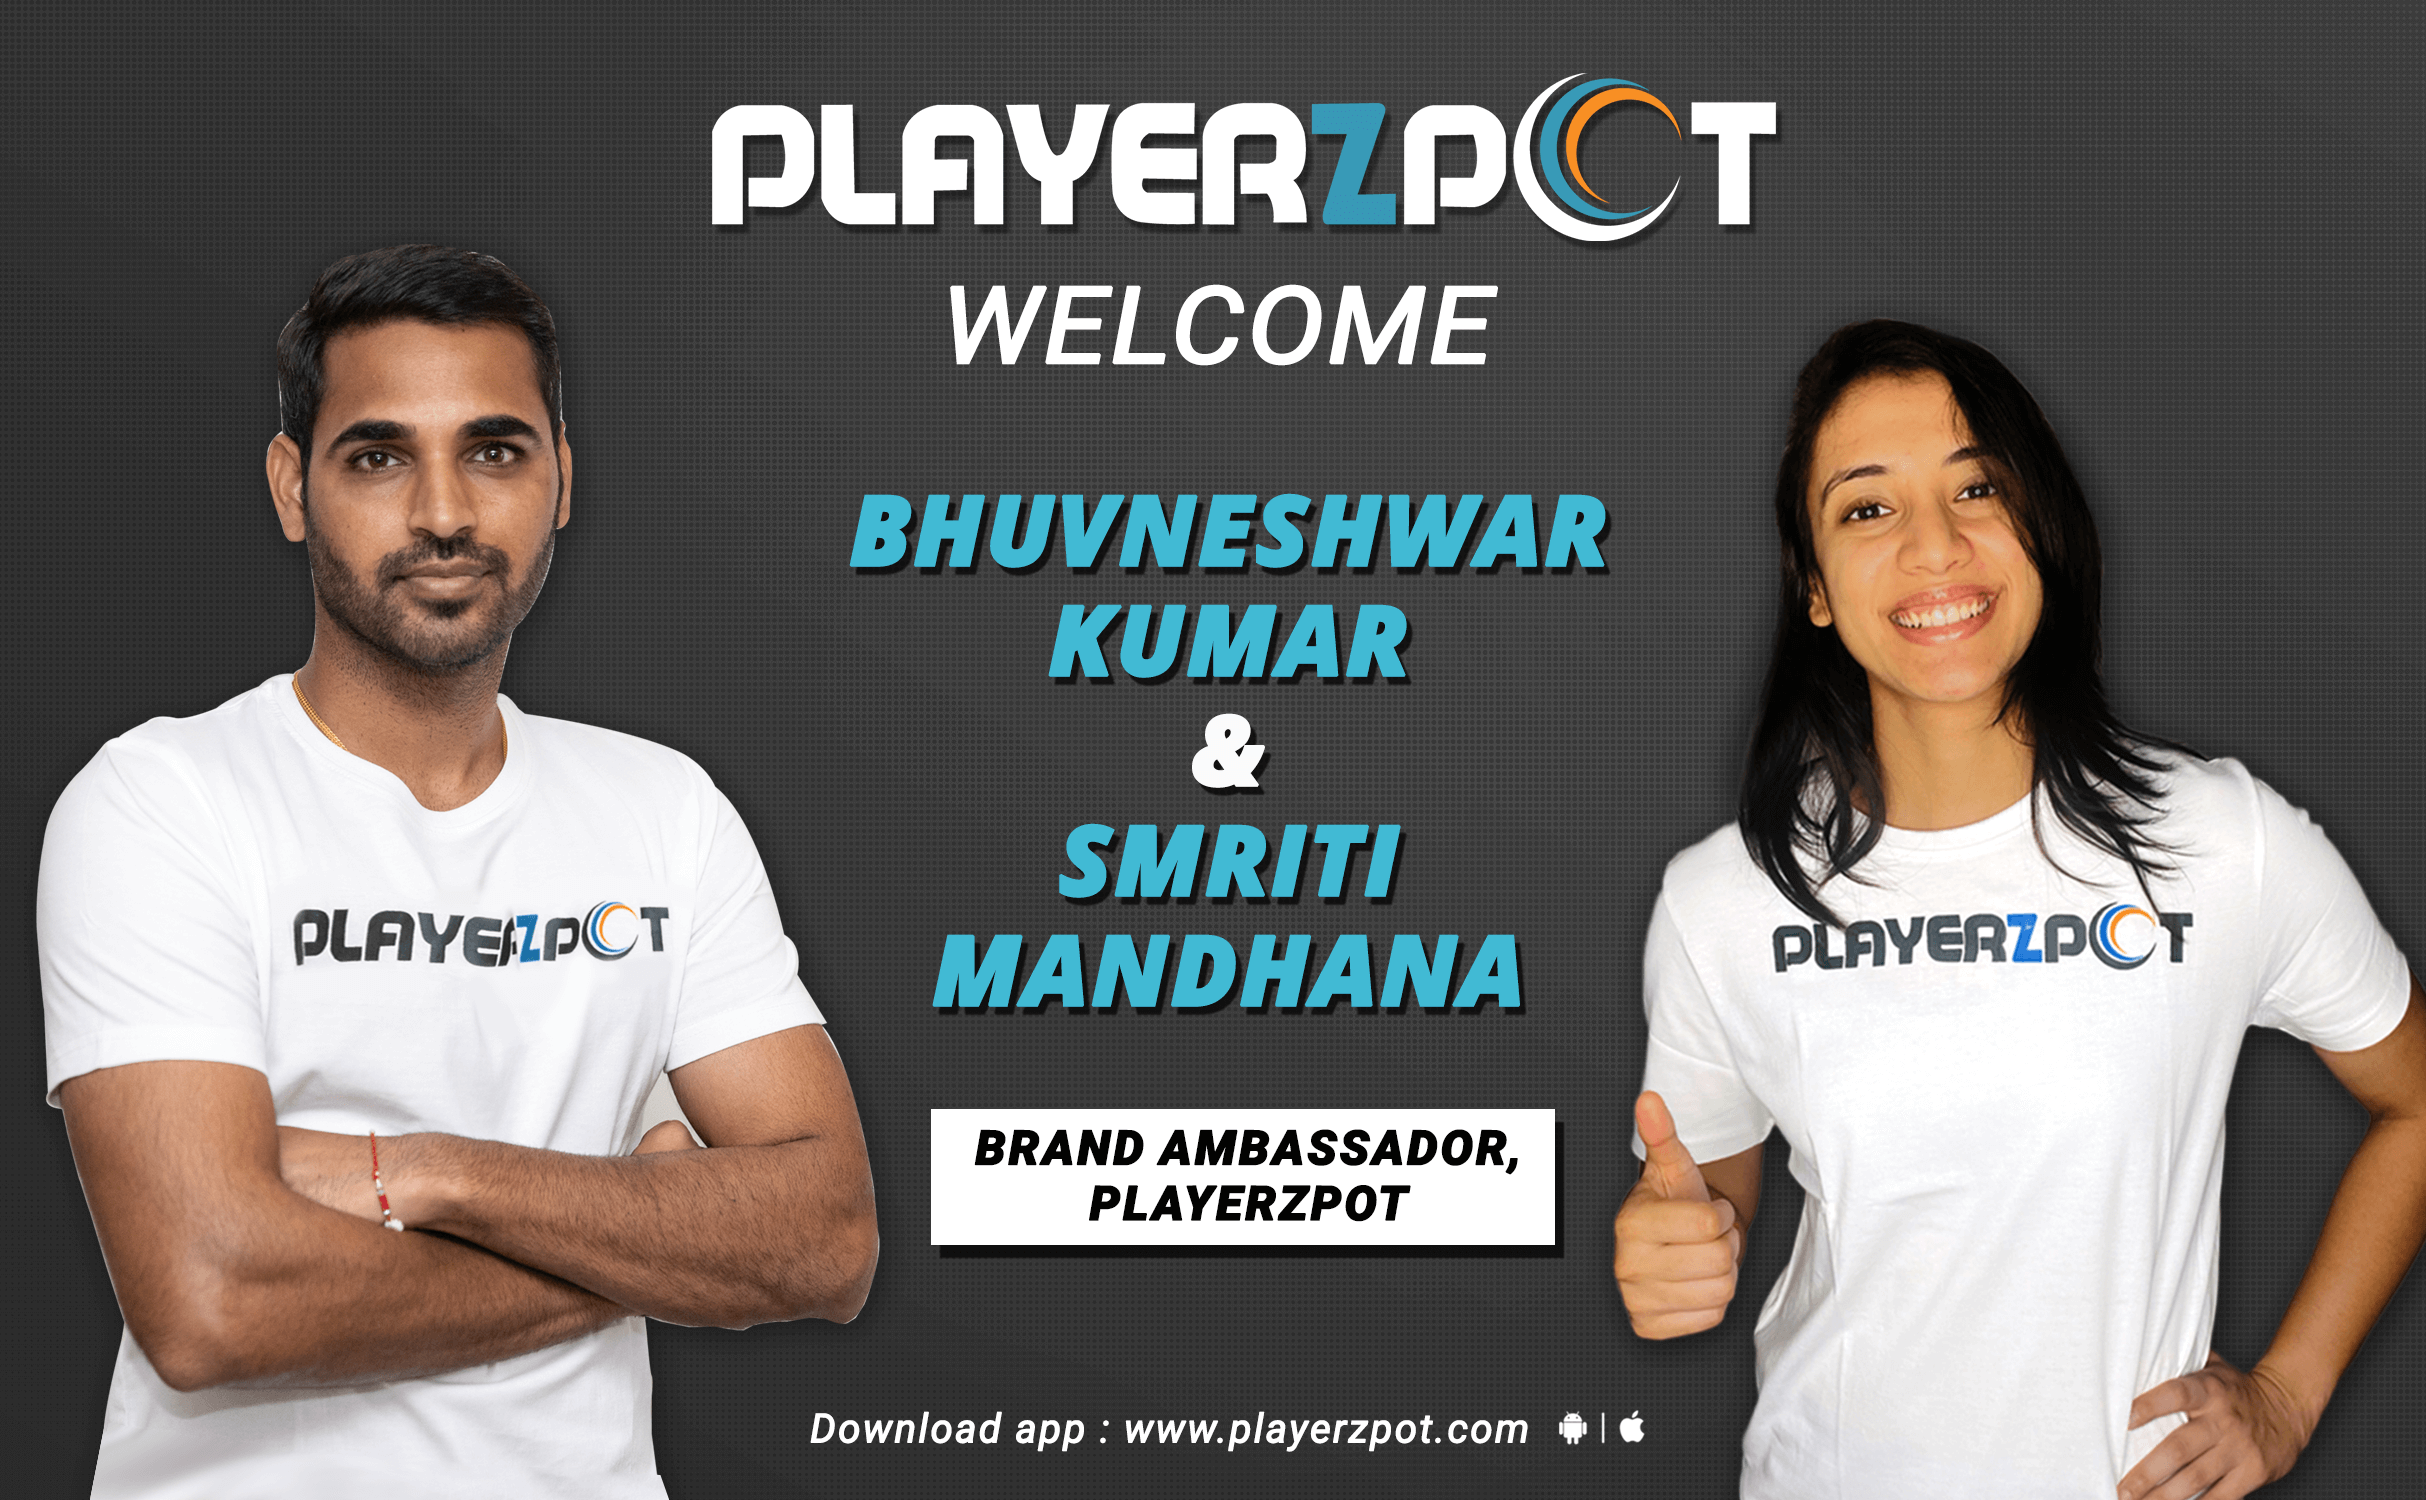 The New Face of Fantasy Sports World of PlayerzPot. Bhuvneshwar and Smriti Mandhana associated officially with PlayerzPot